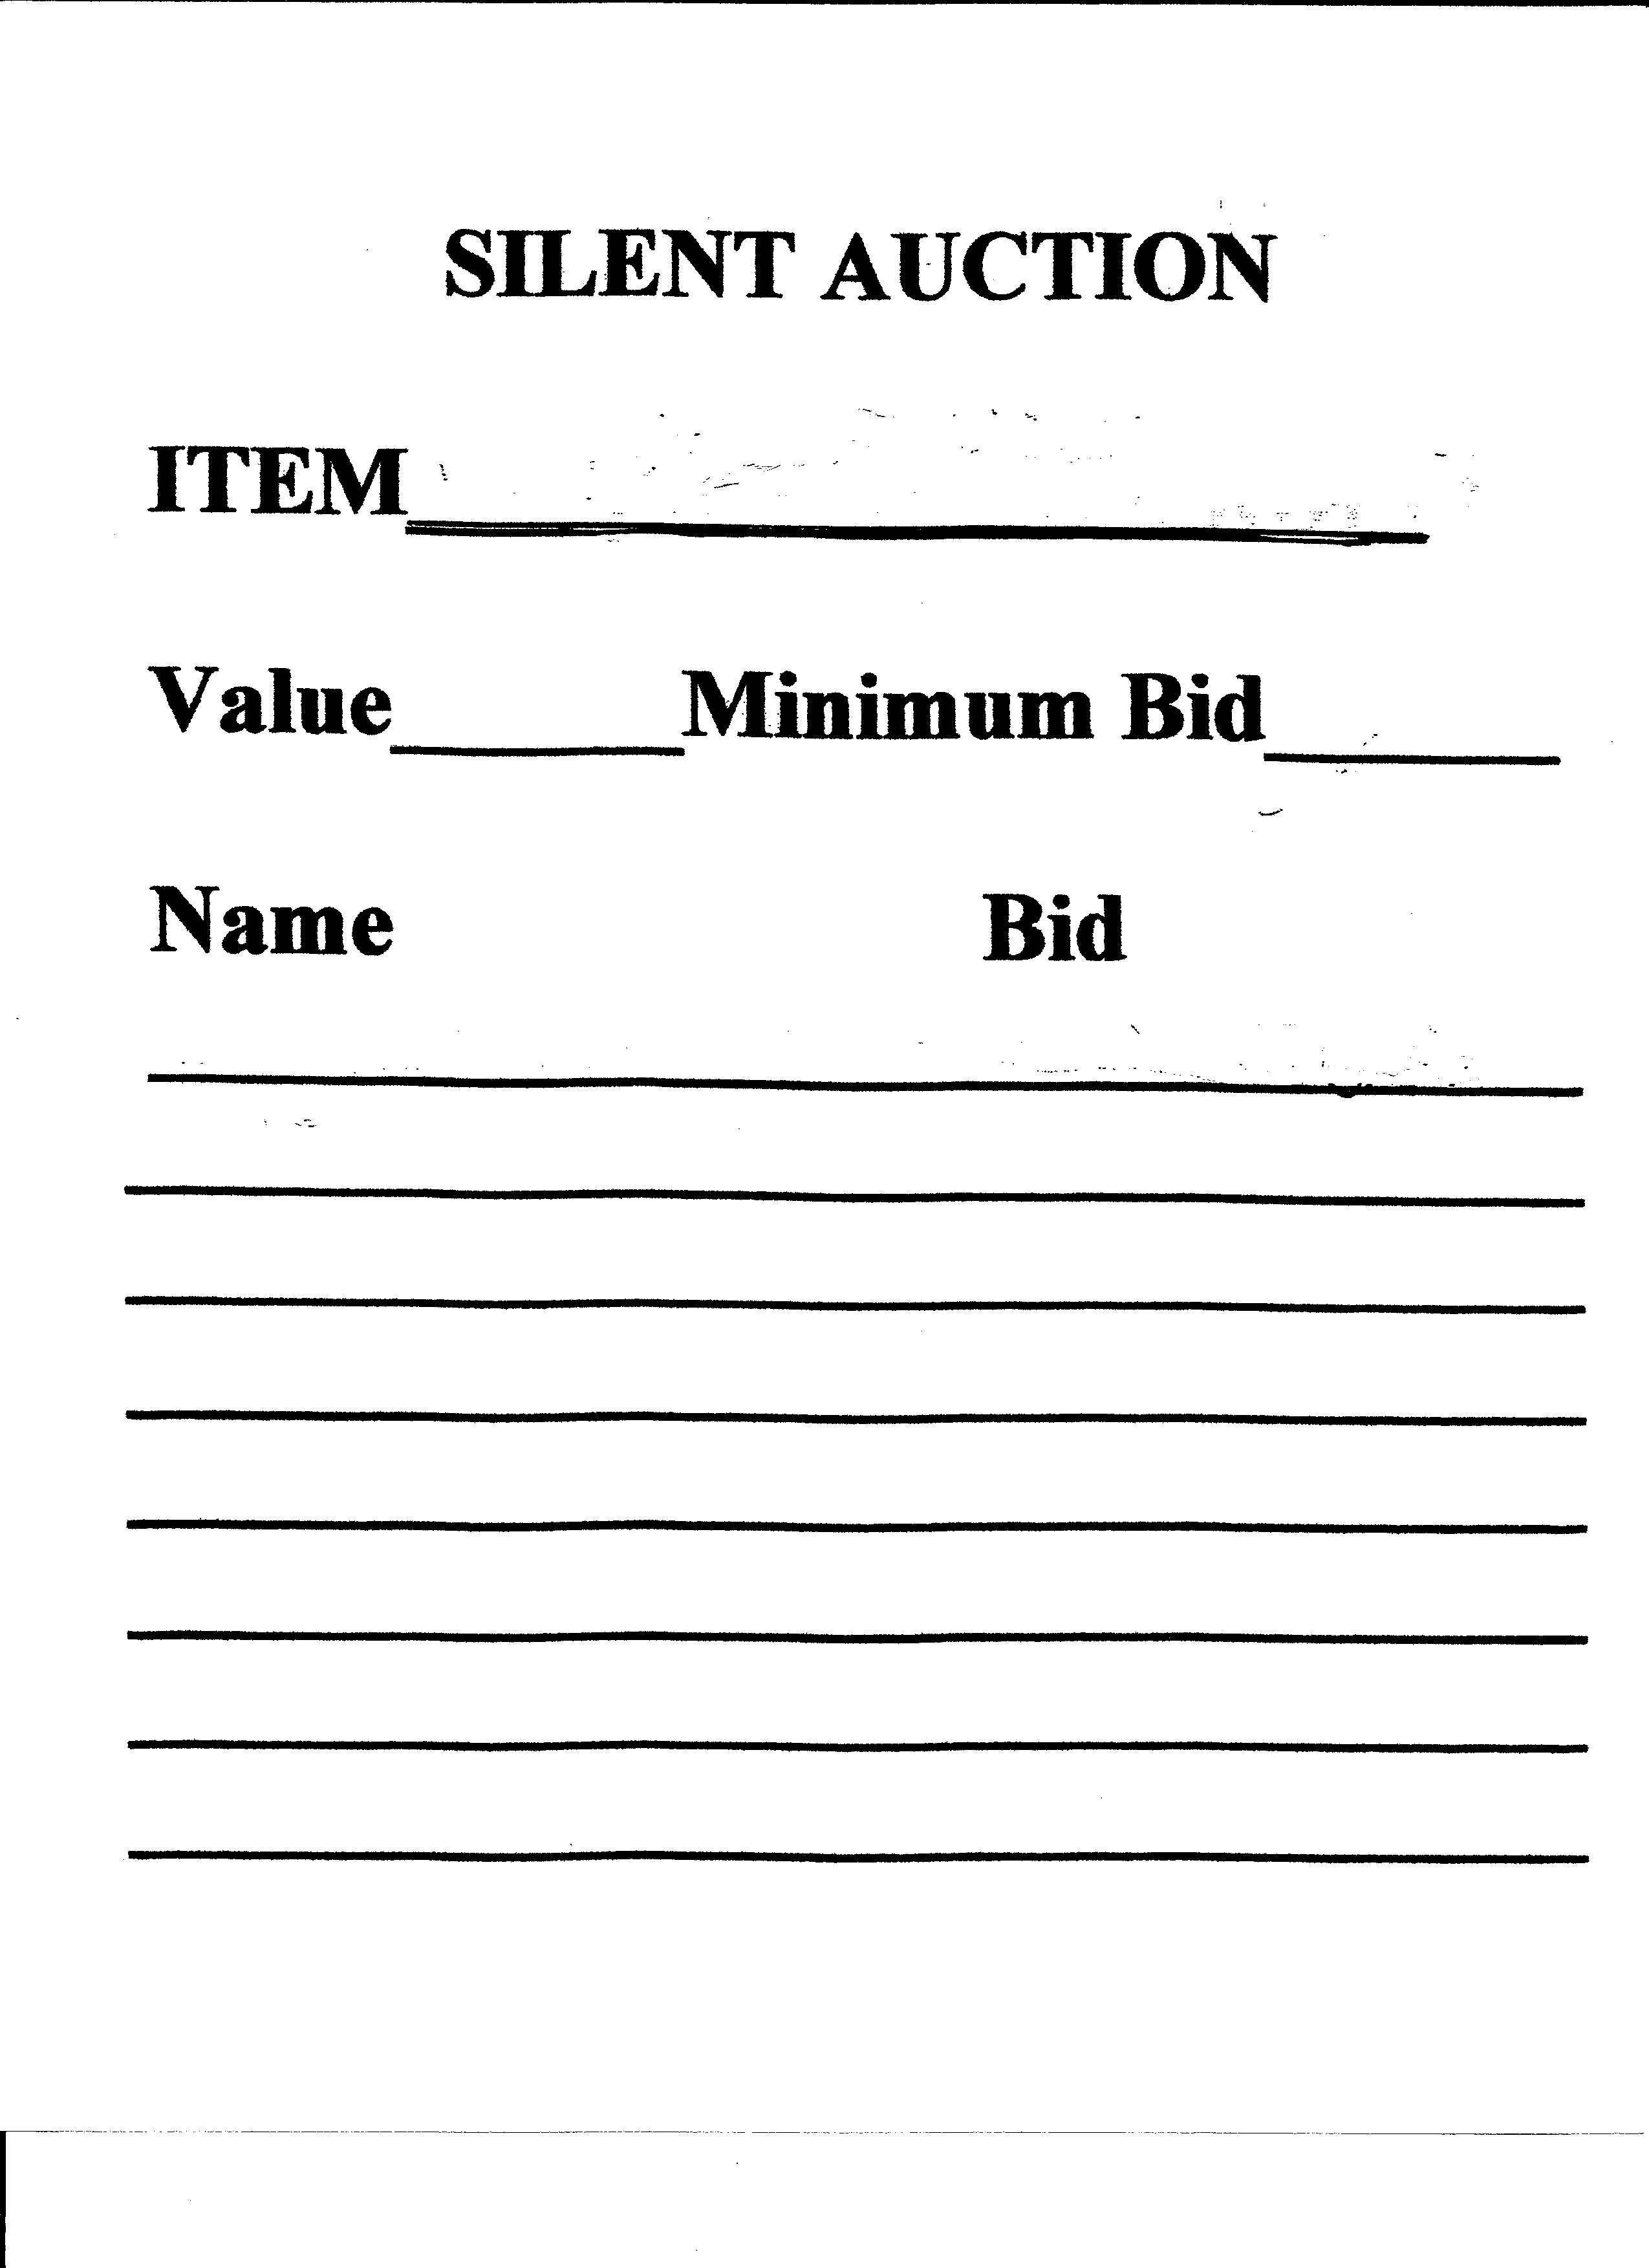 sample of silent auction bid sheet